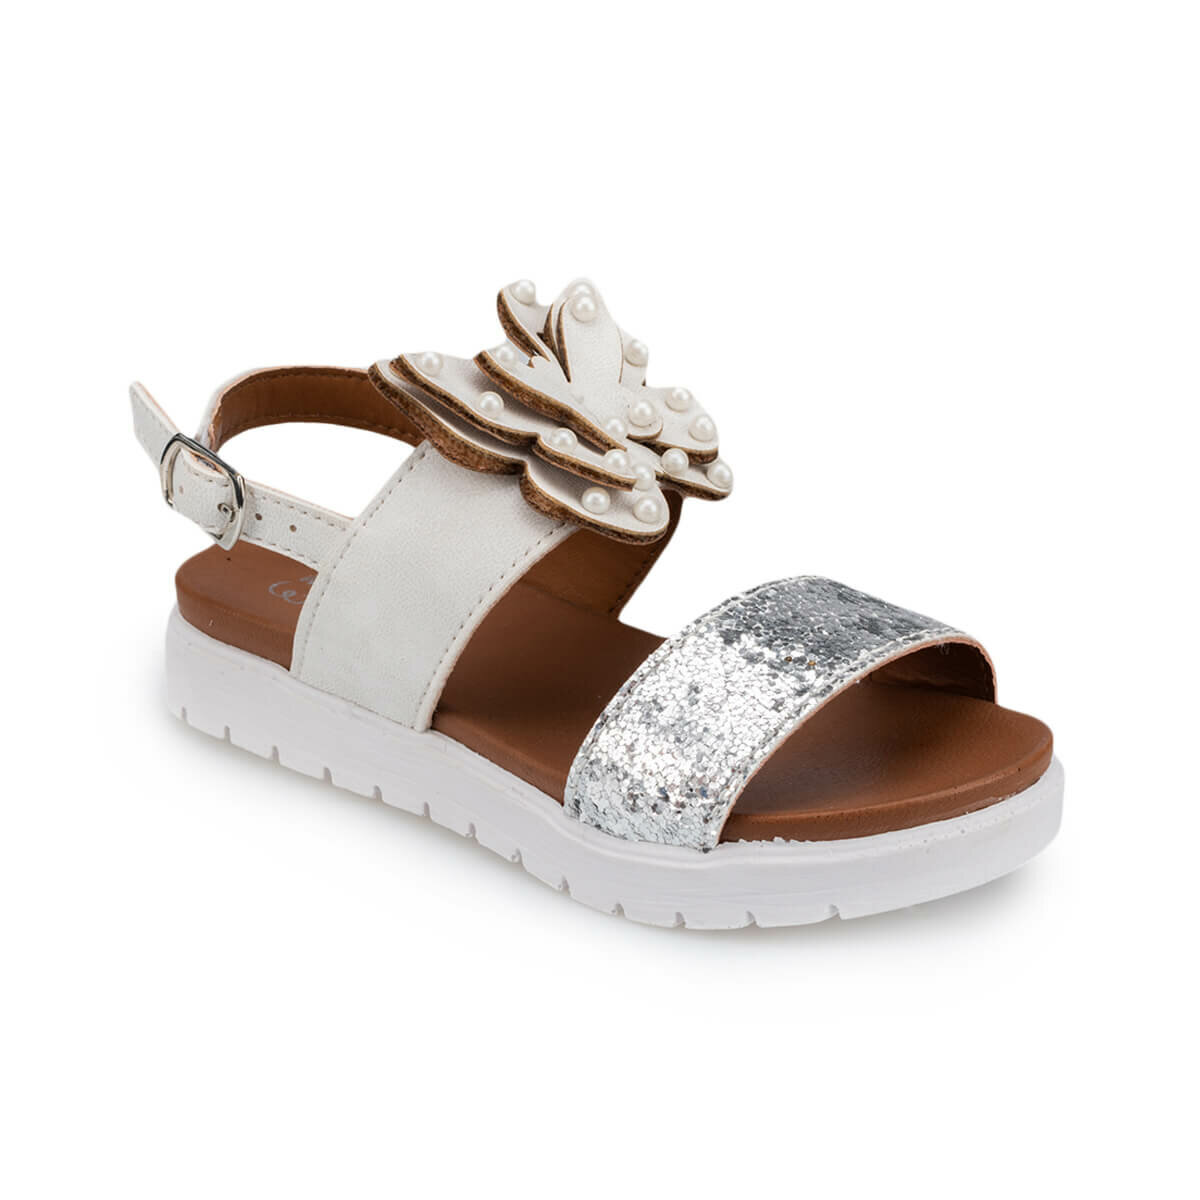 FLO 91.511185.P White Female Child Sandals Polaris